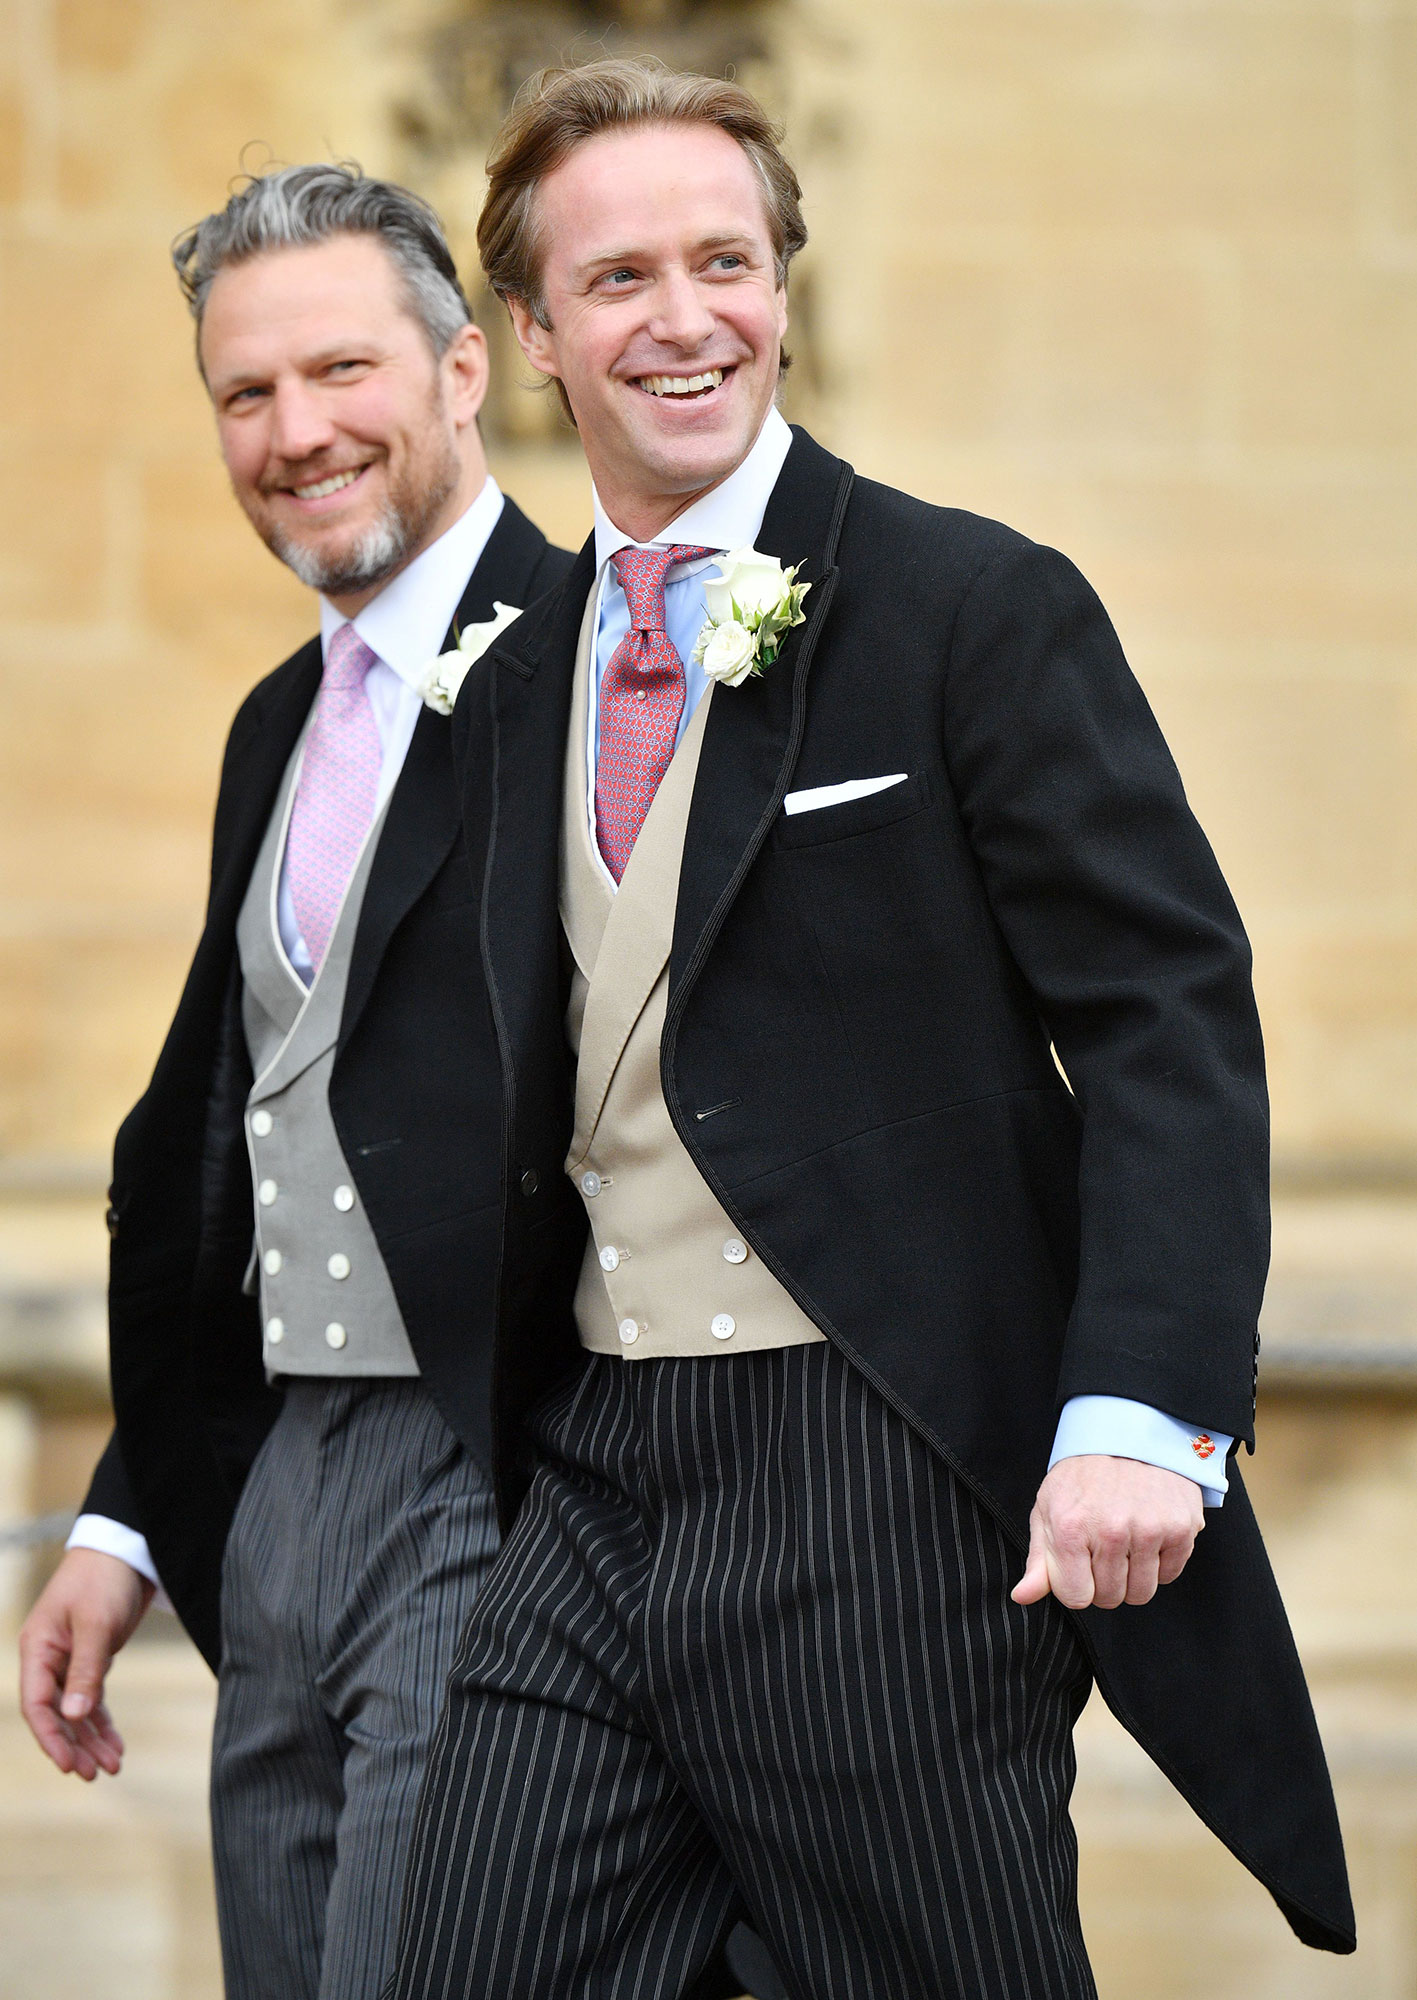 Mandatory Credit: Photo by Tim Rooke/REX/Shutterstock (10239423bm) Thomas Kingston The wedding of Lady Gabriella Windsor and Thomas Kingston, St George's Chapel, Windsor Castle, UK - 18 May 2019